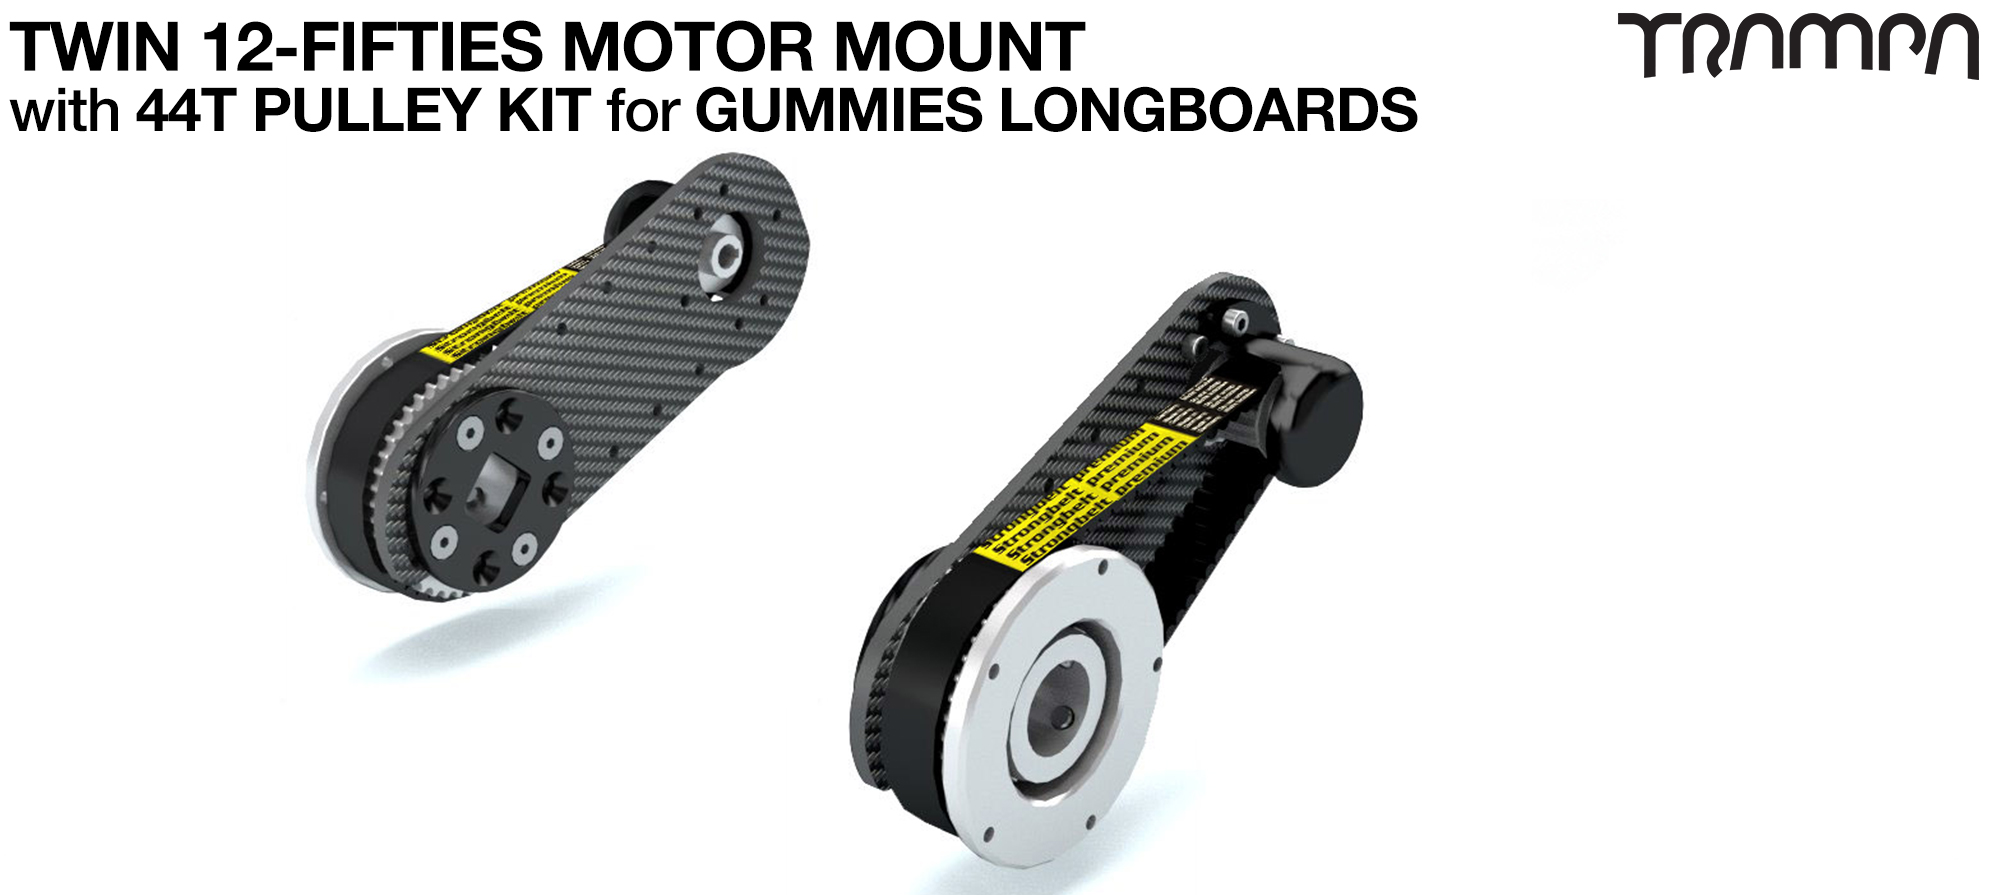 12Fifties CARBON Fibre Motormount Panel with Motor Axle support & Pulley Kit for GUMMIES Wheels TWIN